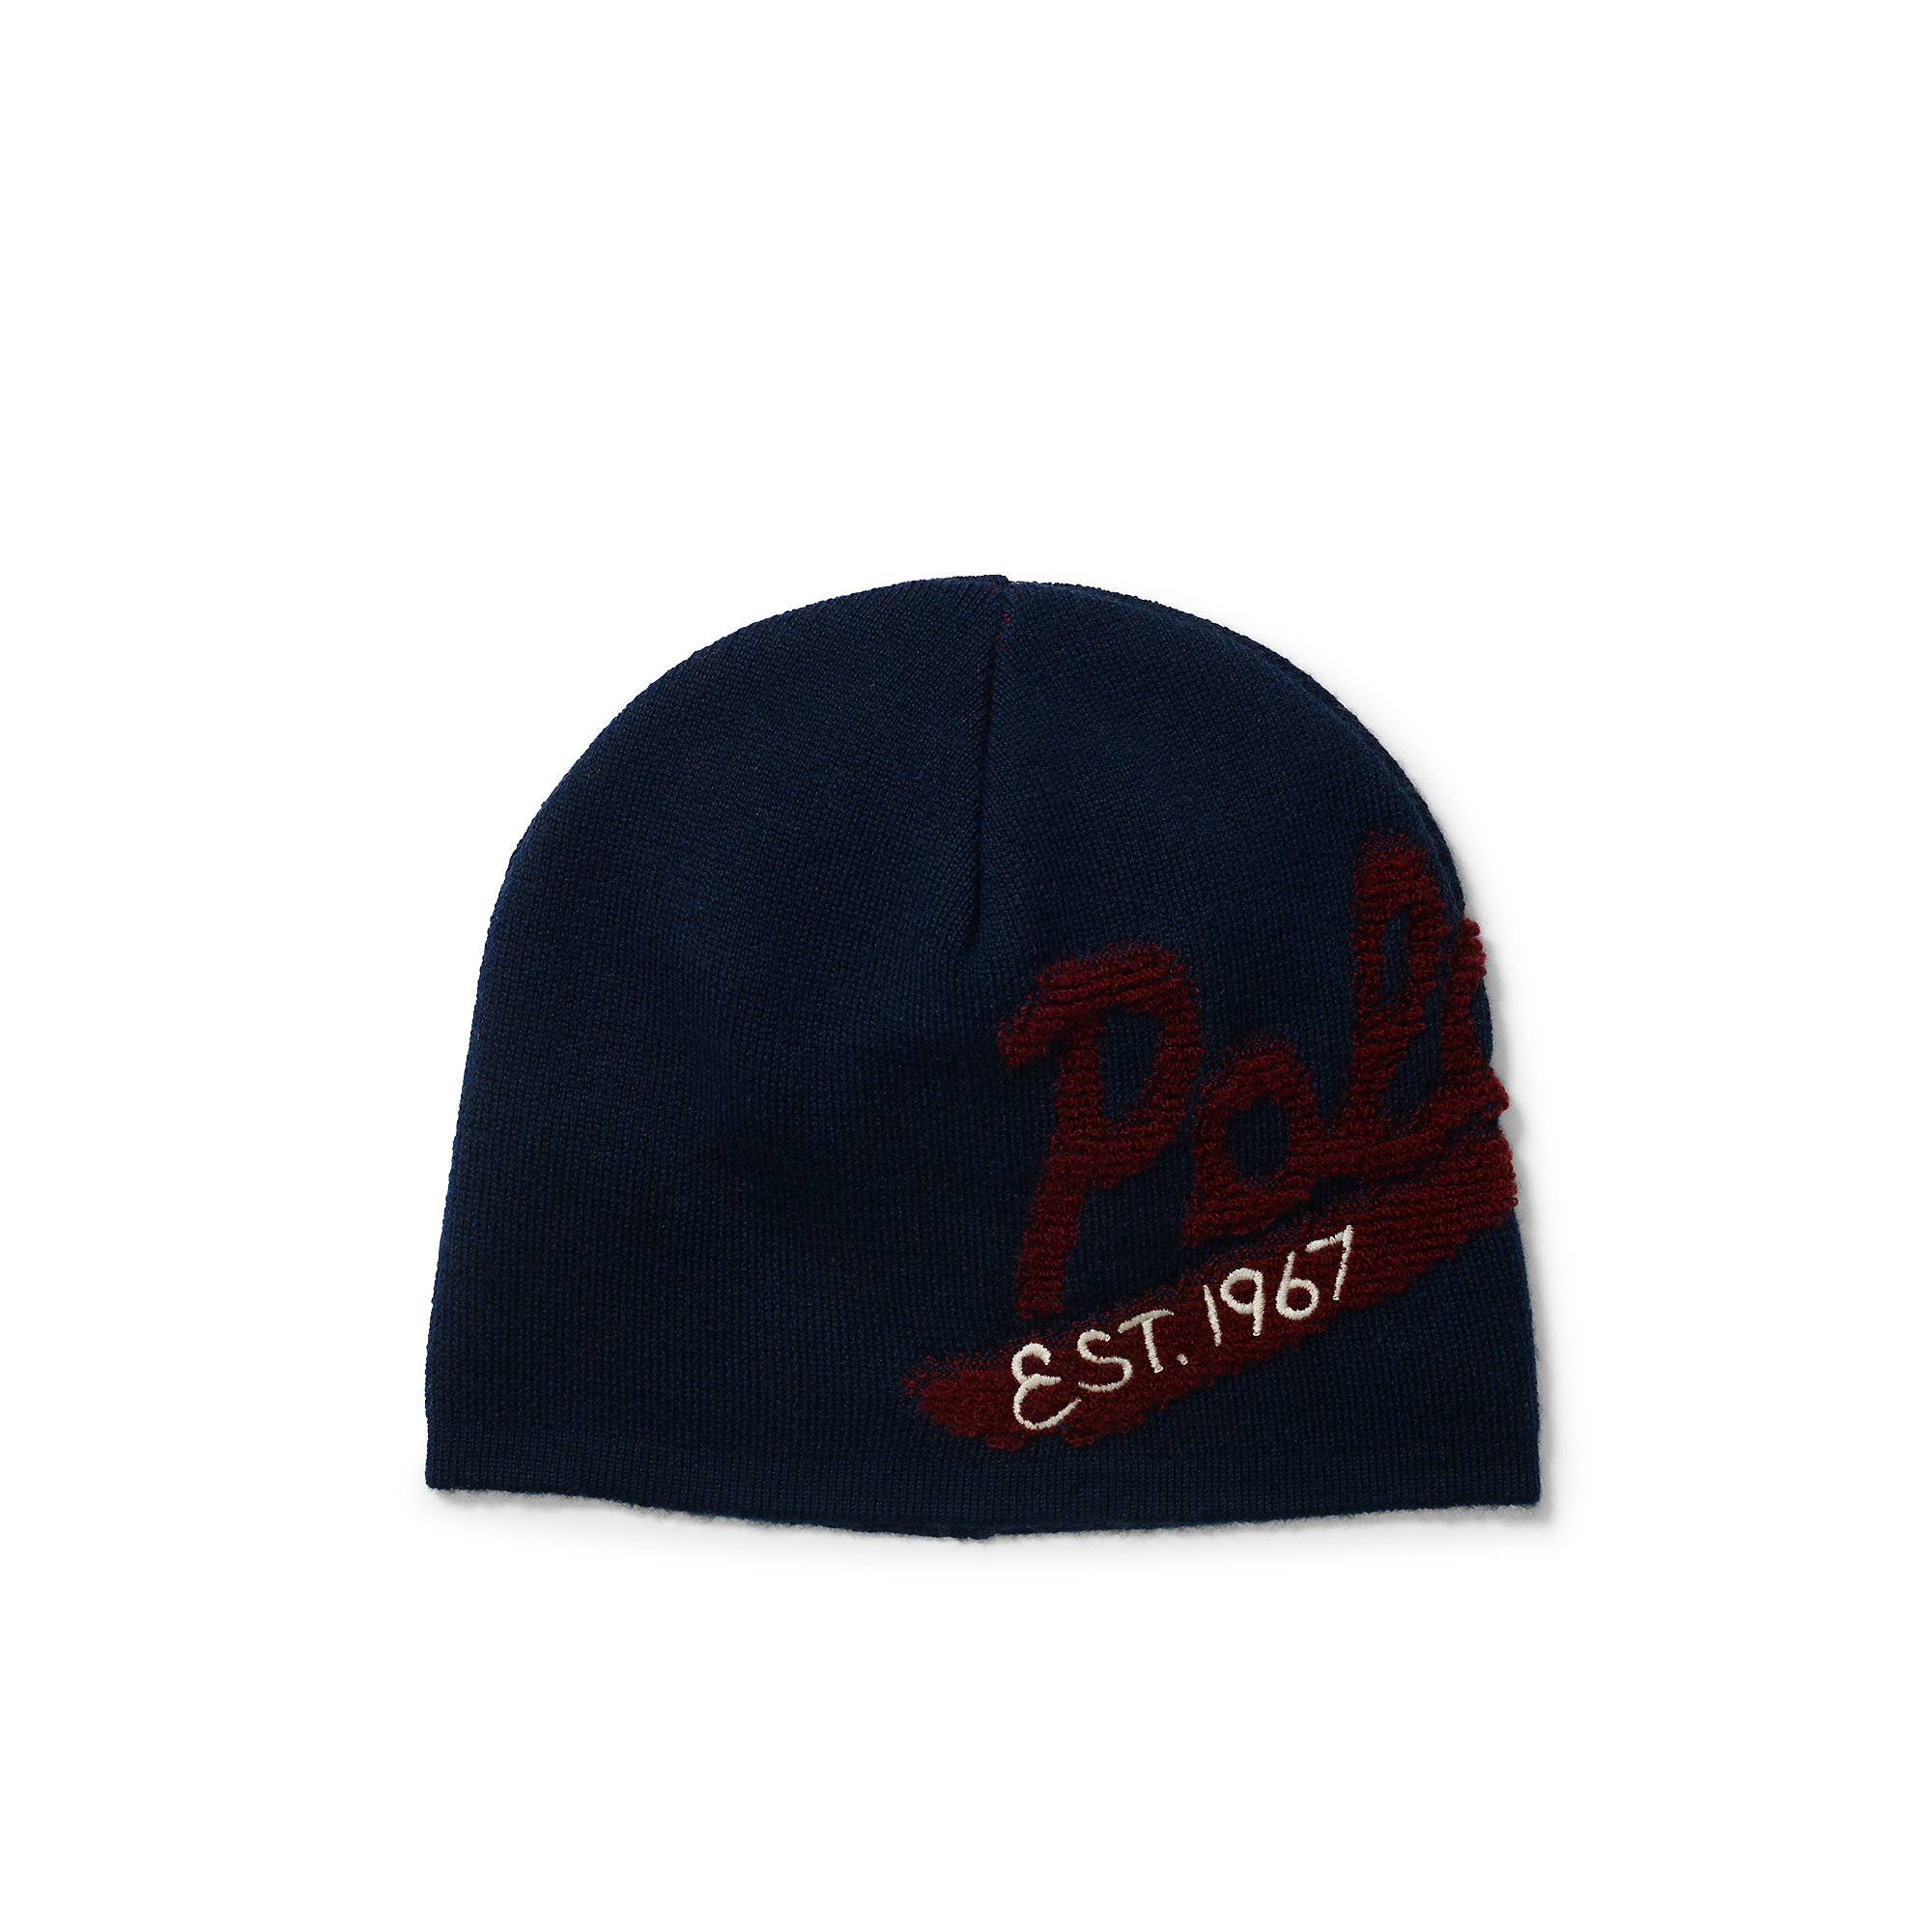 polo ralph lauren polo wool cap in blue for men navy wine. Black Bedroom Furniture Sets. Home Design Ideas